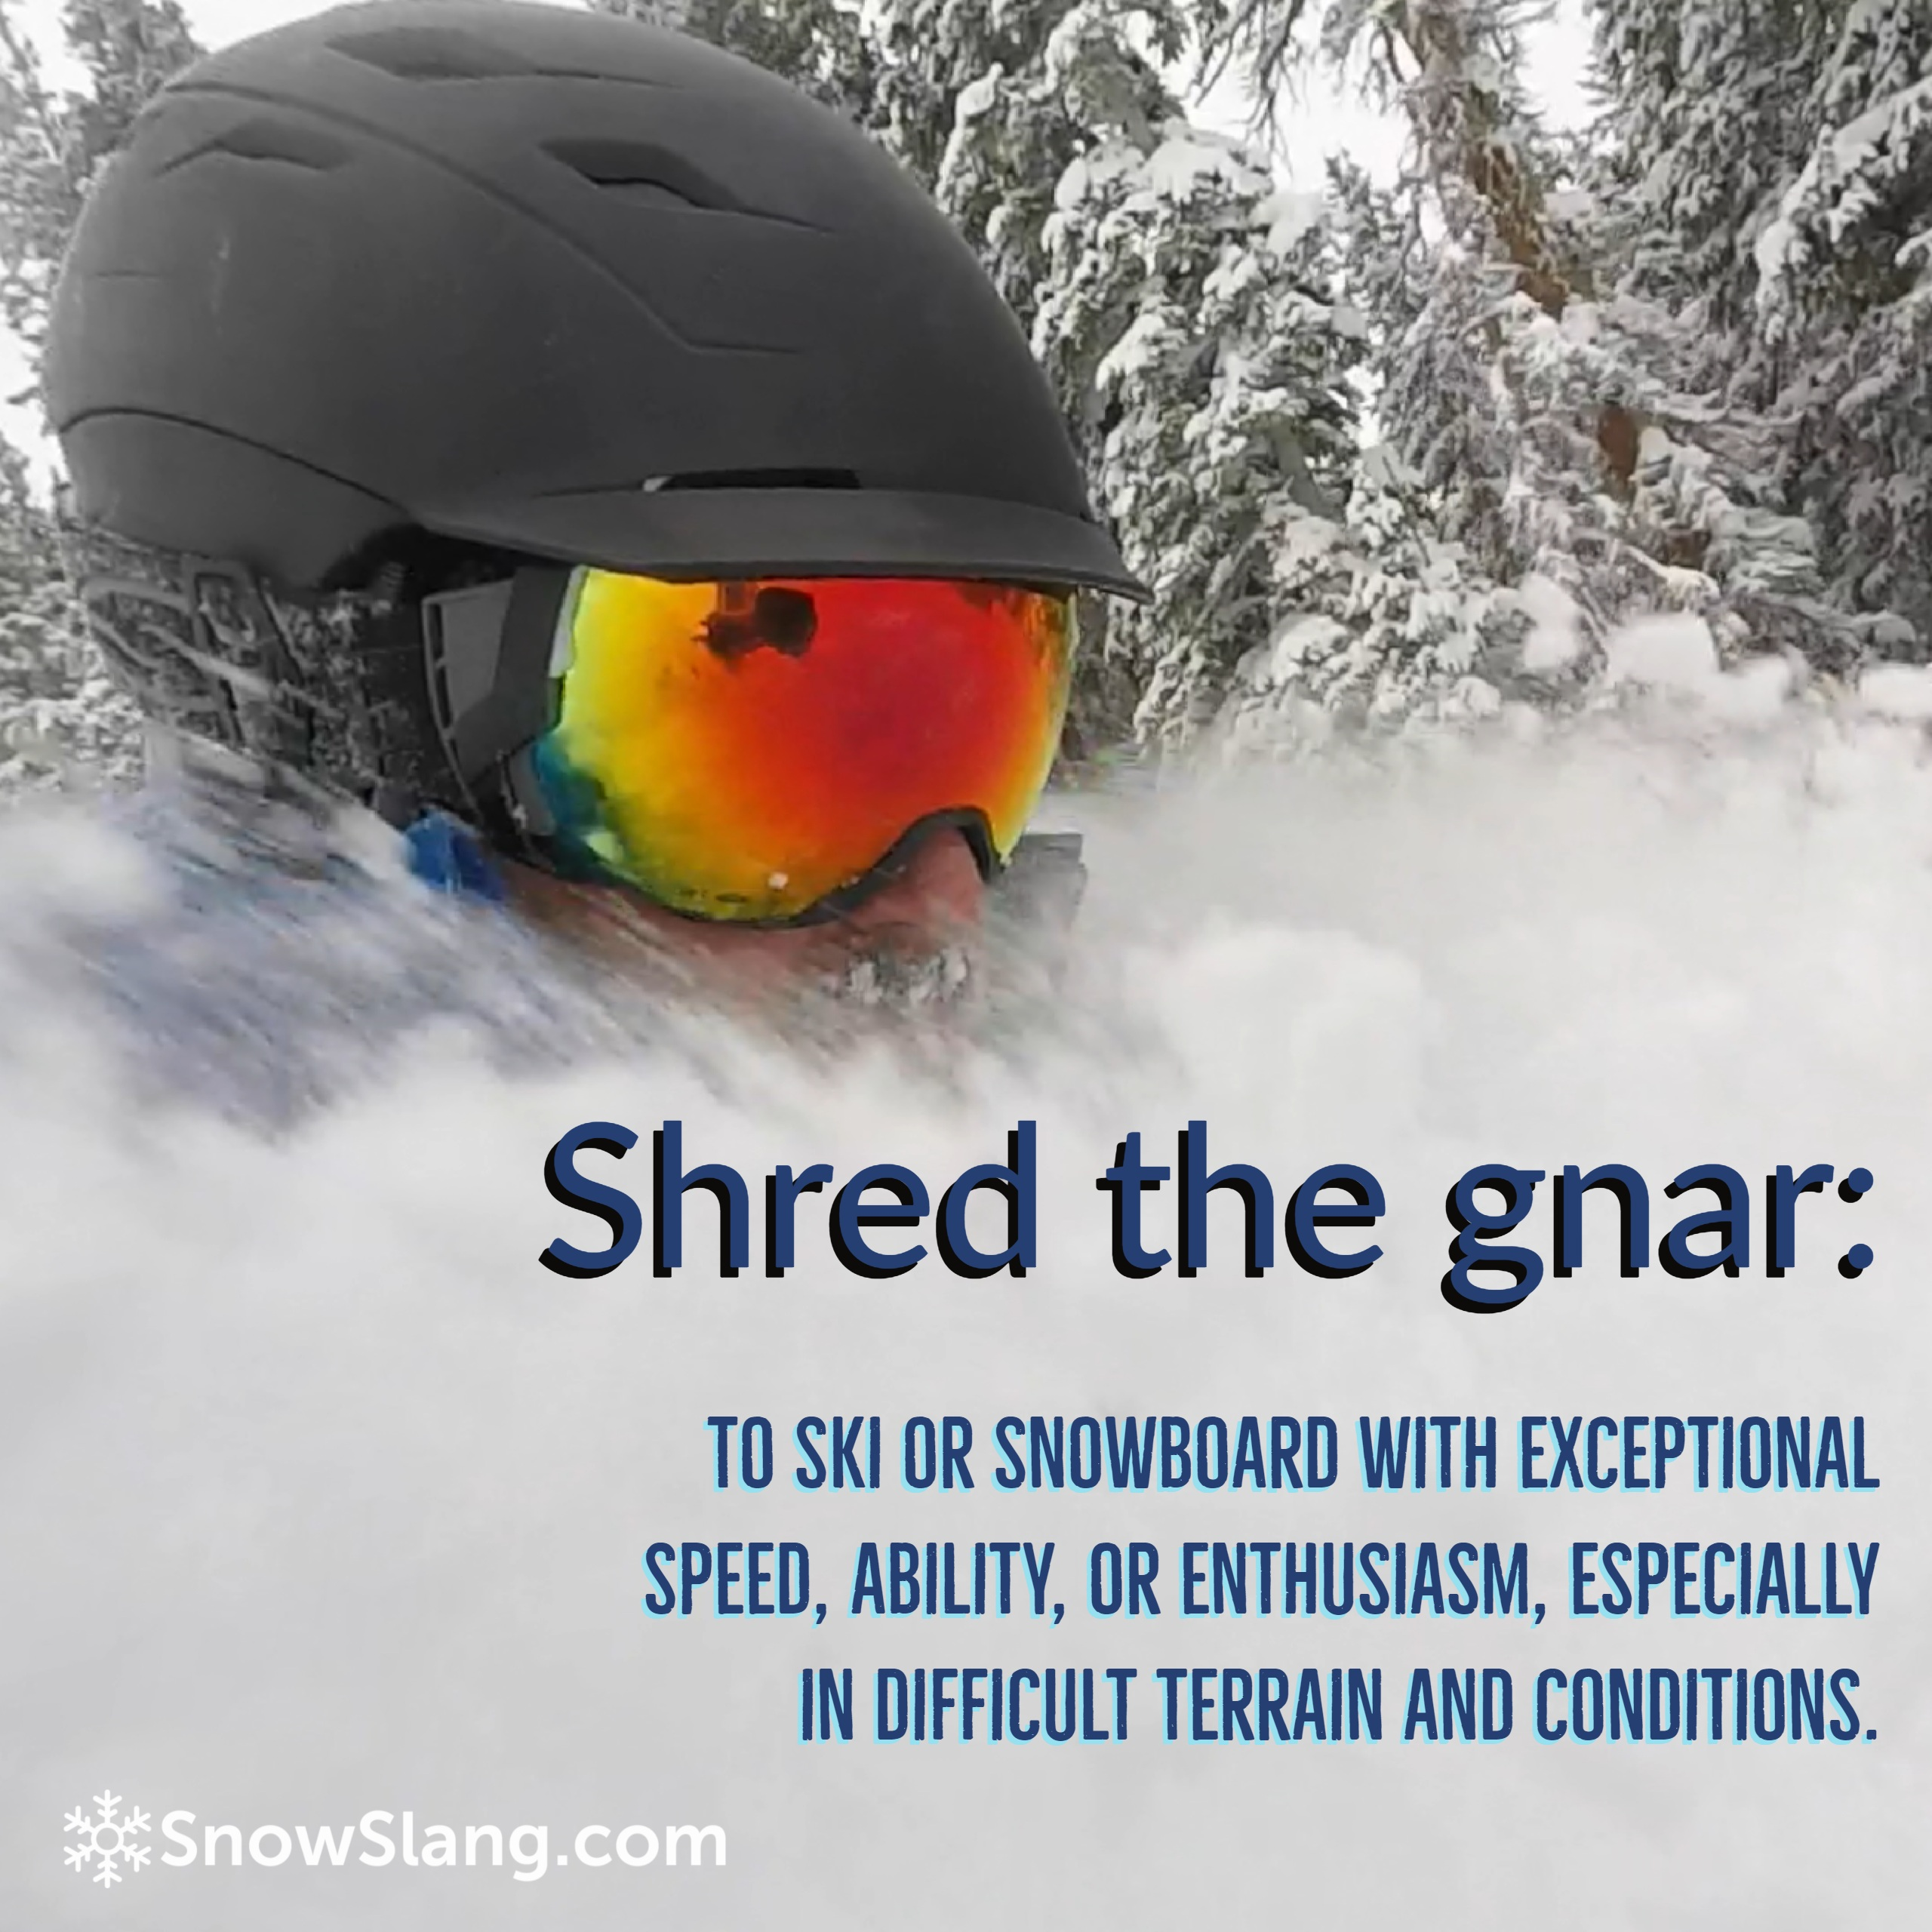 shred the gnar meaning